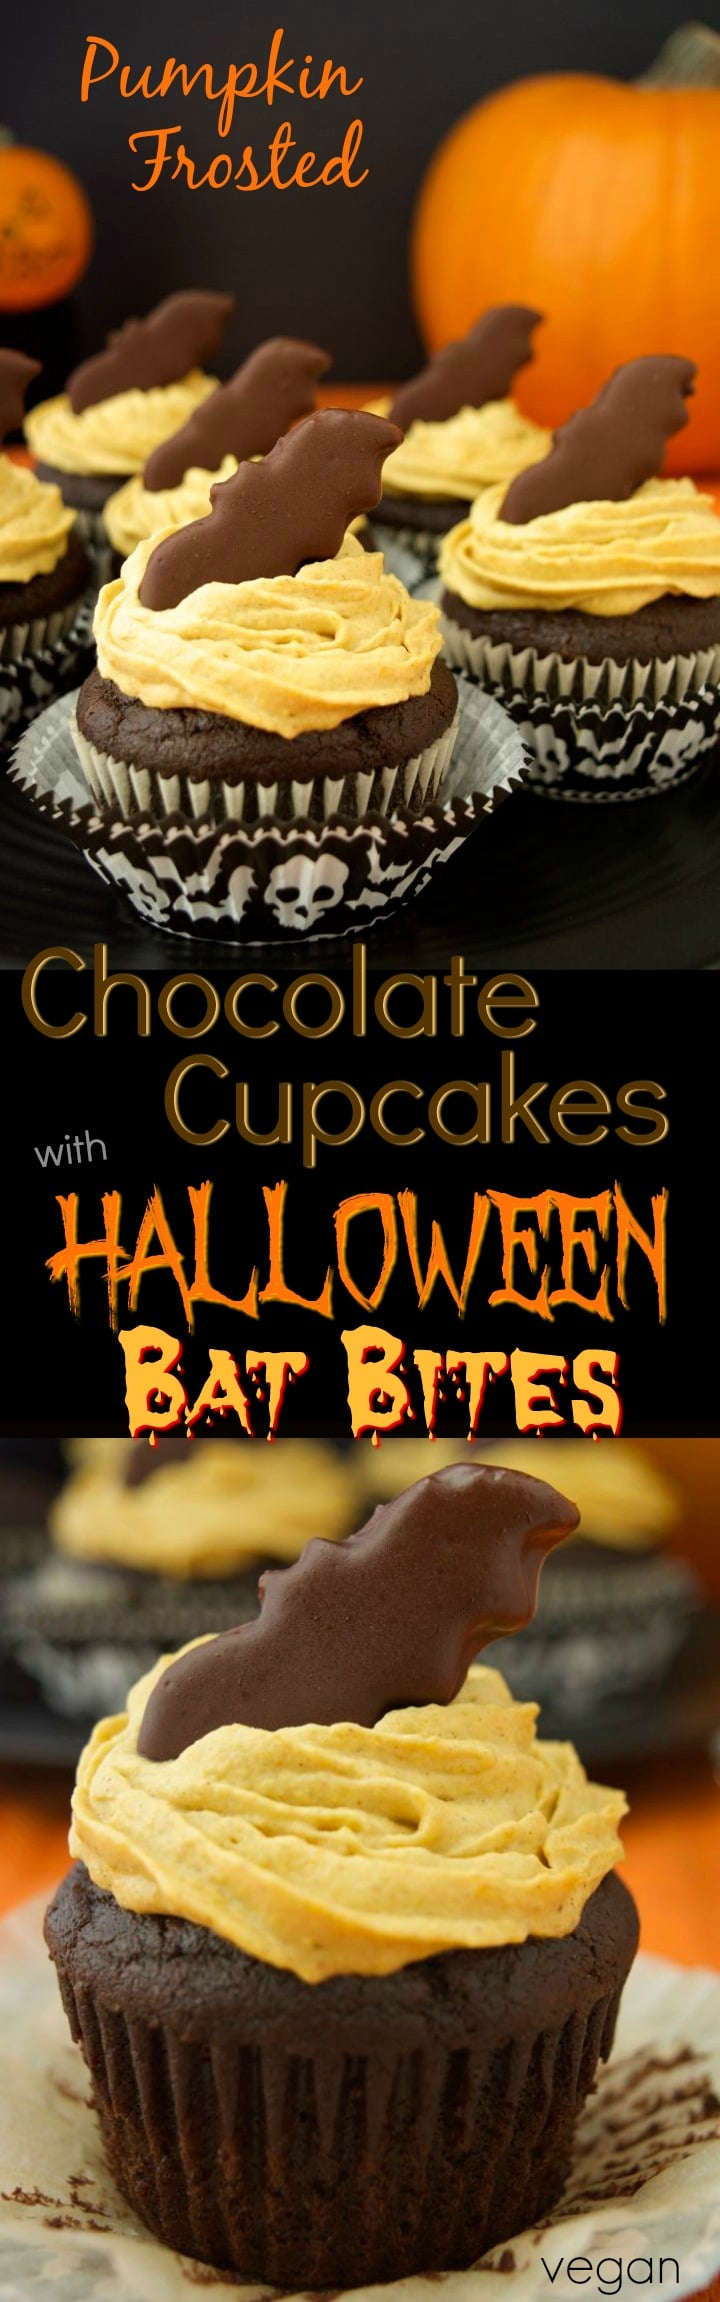 pumpkin frosted chocolate cupcakes with bat bites are a healthier vegan holiday inspired dessert